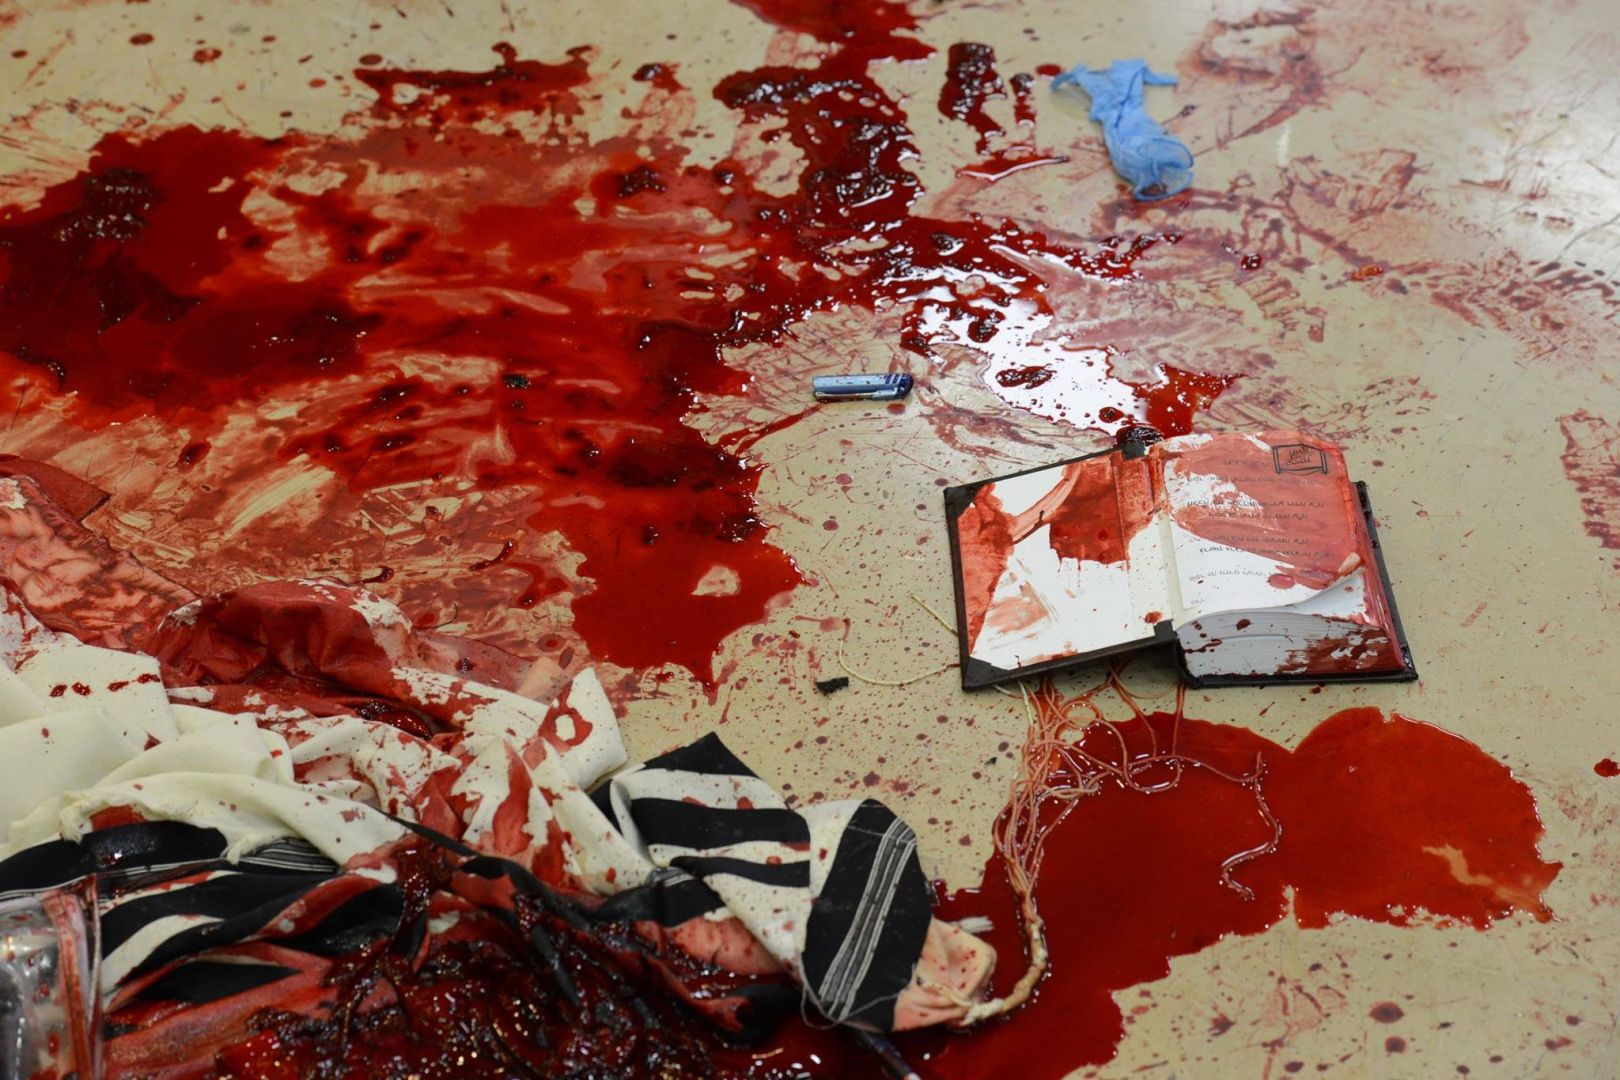 The blood of victims mingled with a tallit (prayer shawl) and a siddur (Jewish prayer book) in the floor of Kehillat Bnei Torah synagogue in Jerusalem.  (Photo: GPO)